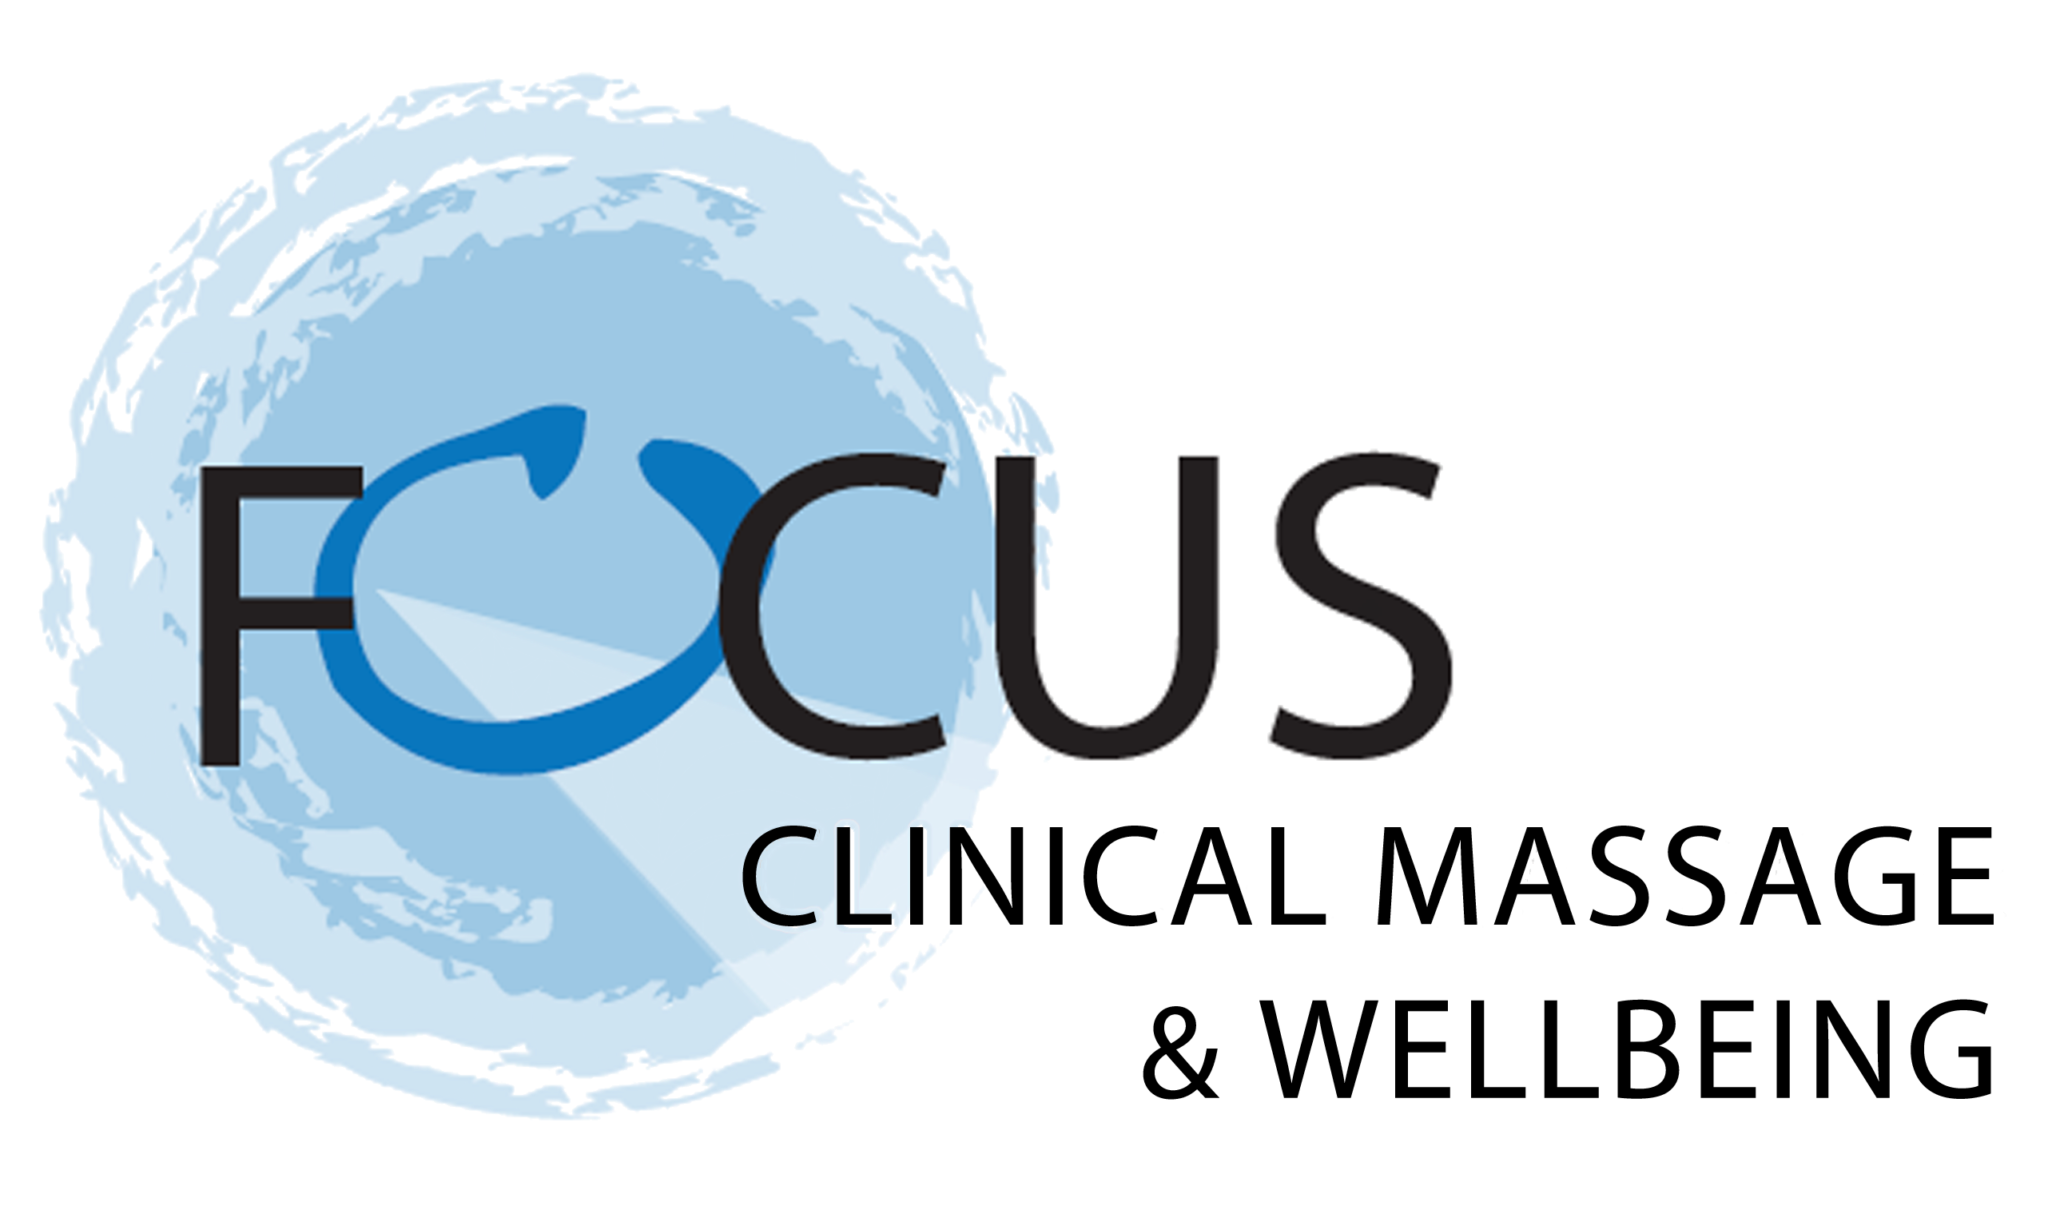 Focus Clinical Massage & Wellbeing